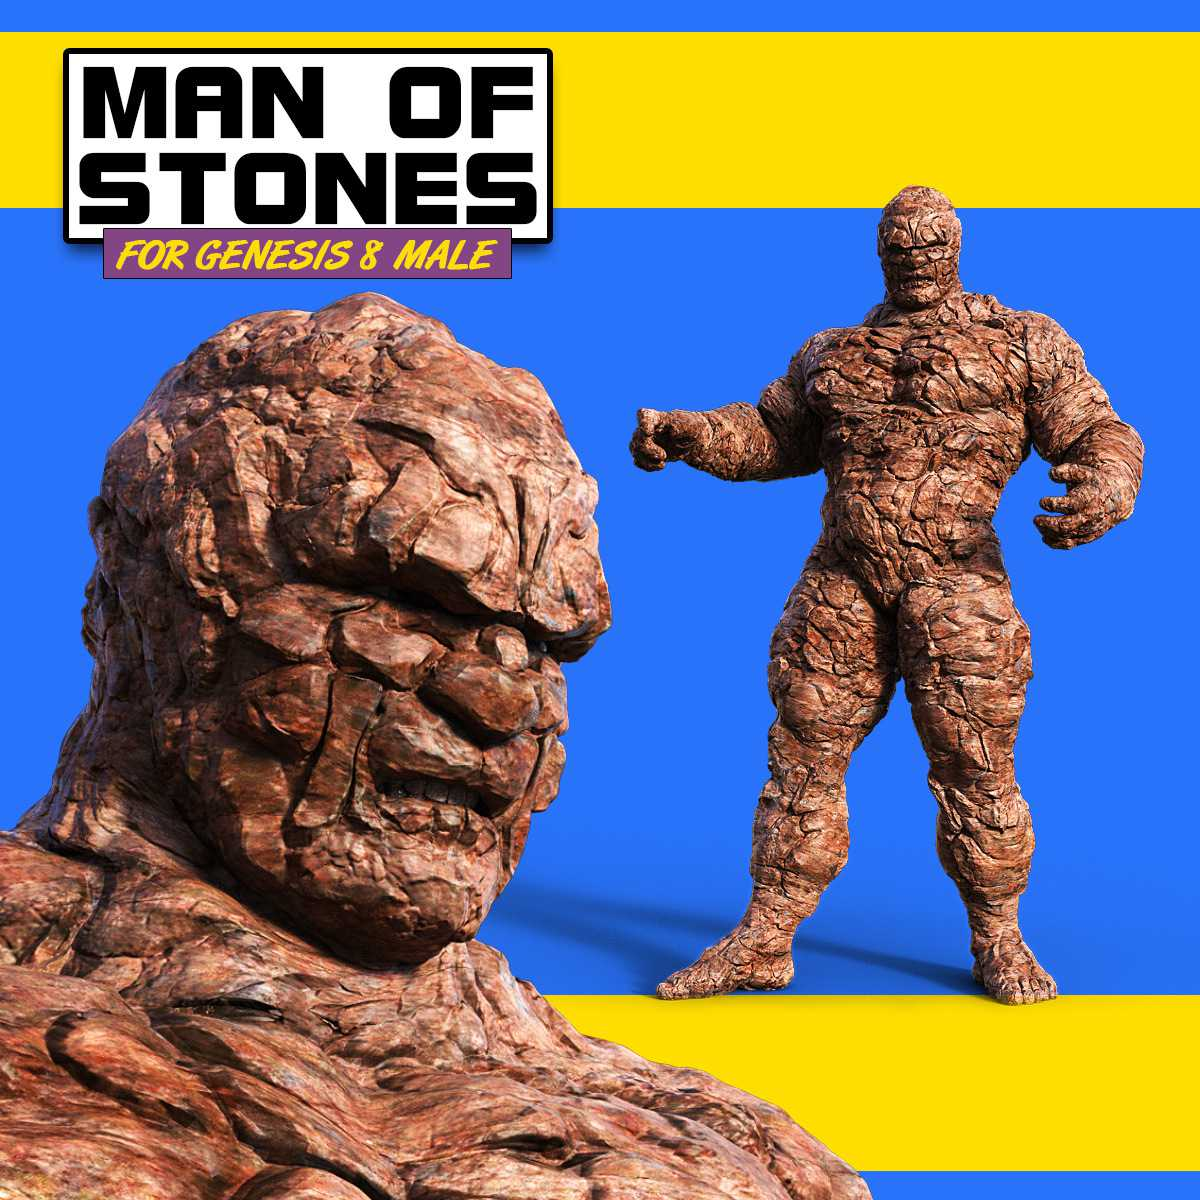 Man Of Stones for G8M